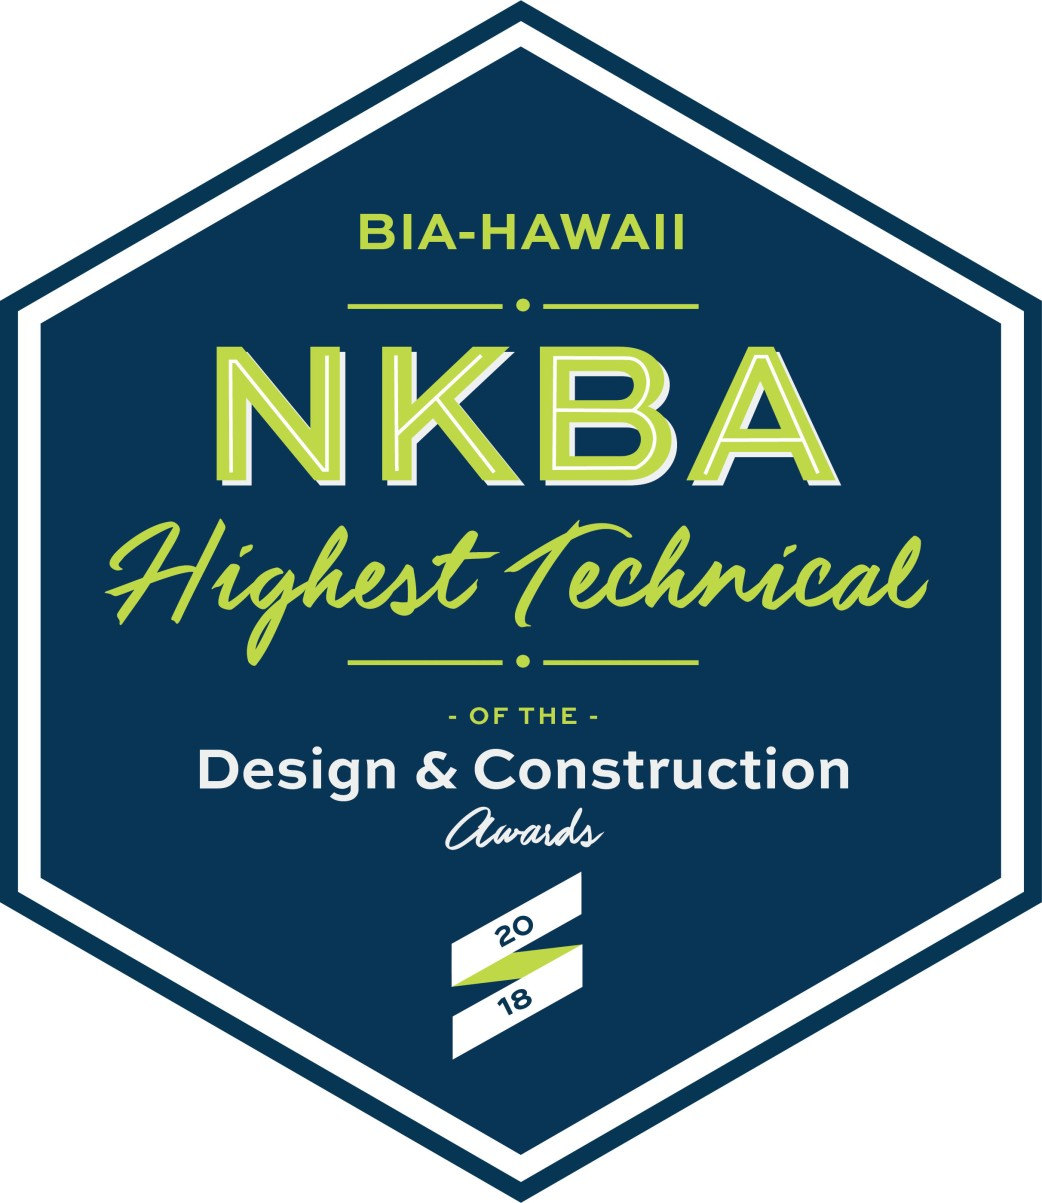 BIA_HI_BUILDING_INDUSTRY_CONSTRUCTION_NKBA_HIGHEST_TECHNICAL_BADGE copy